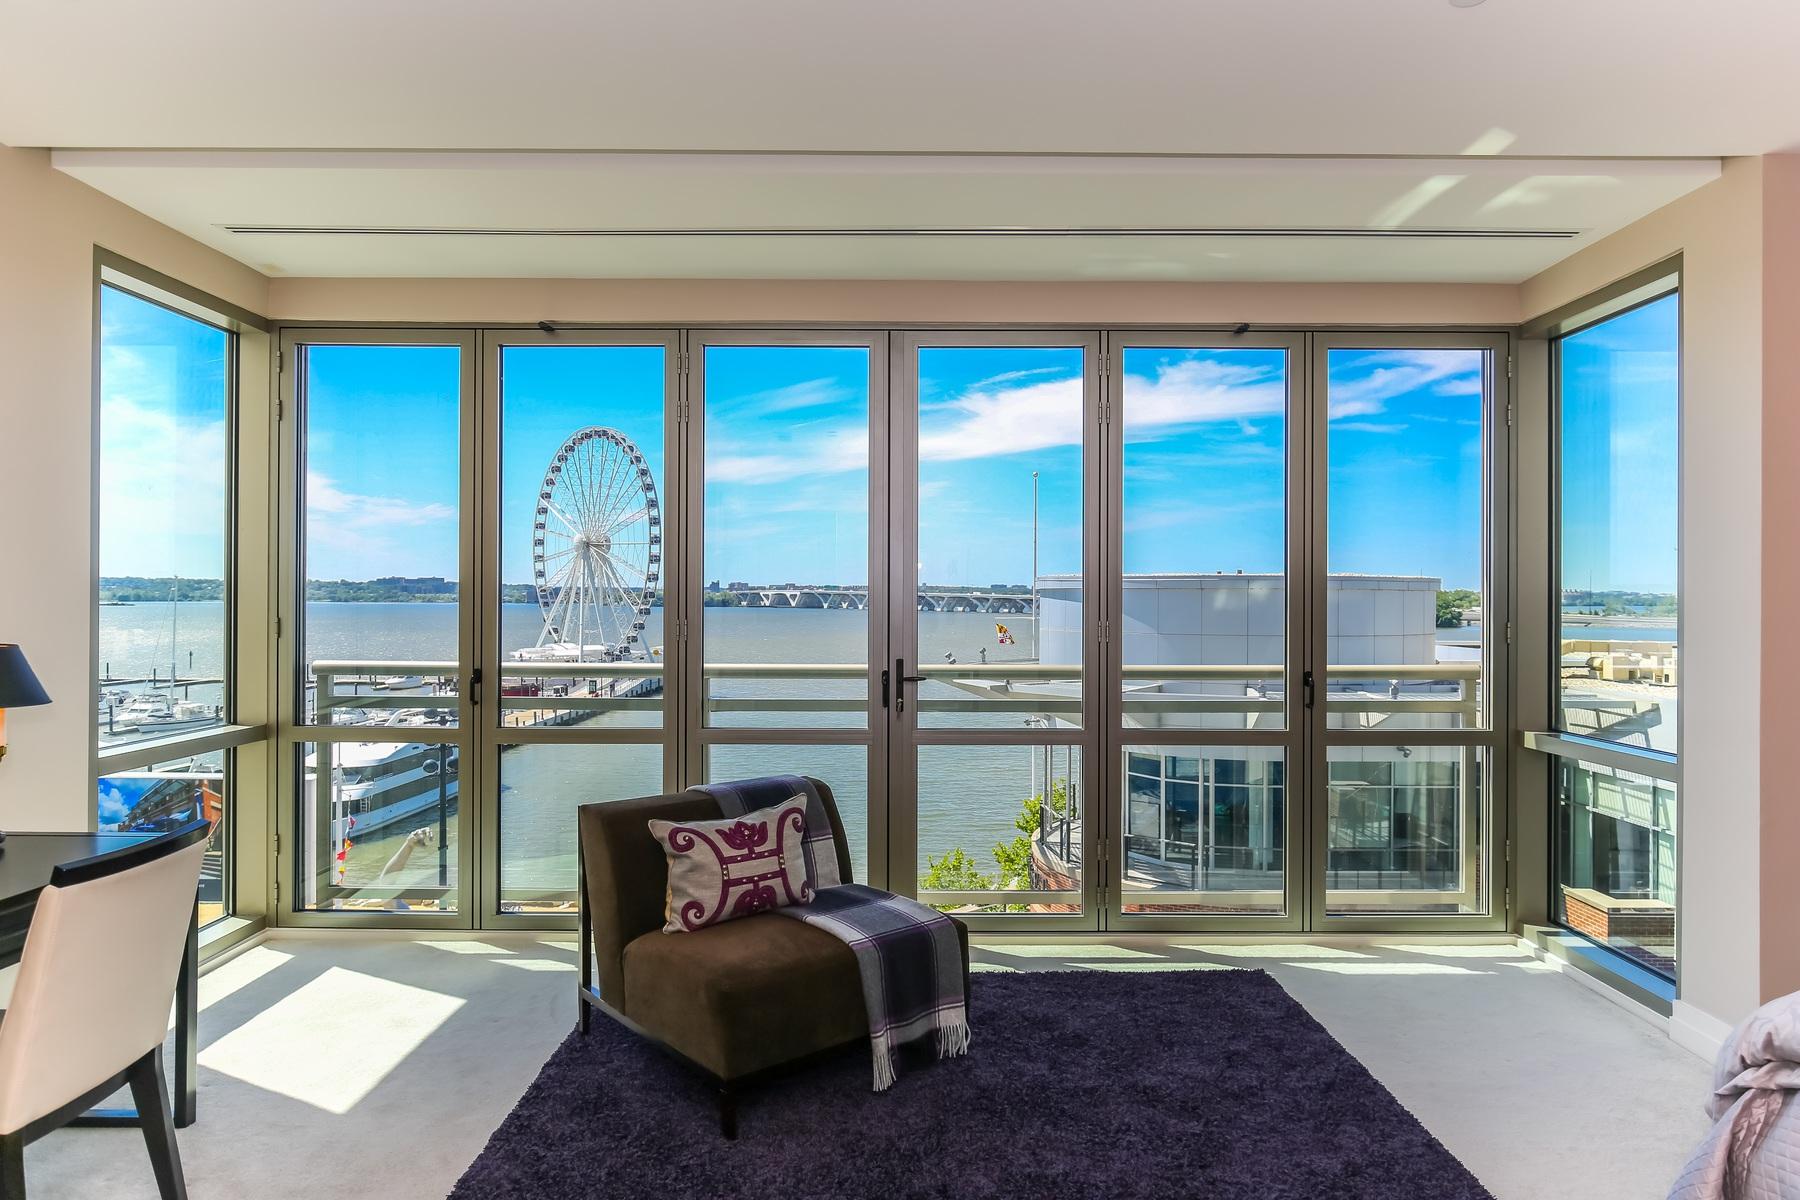 Additional photo for property listing at 147 Waterfront 301, National Harbor 147 Waterfront St 301 Oxon Hill, Maryland 20745 United States